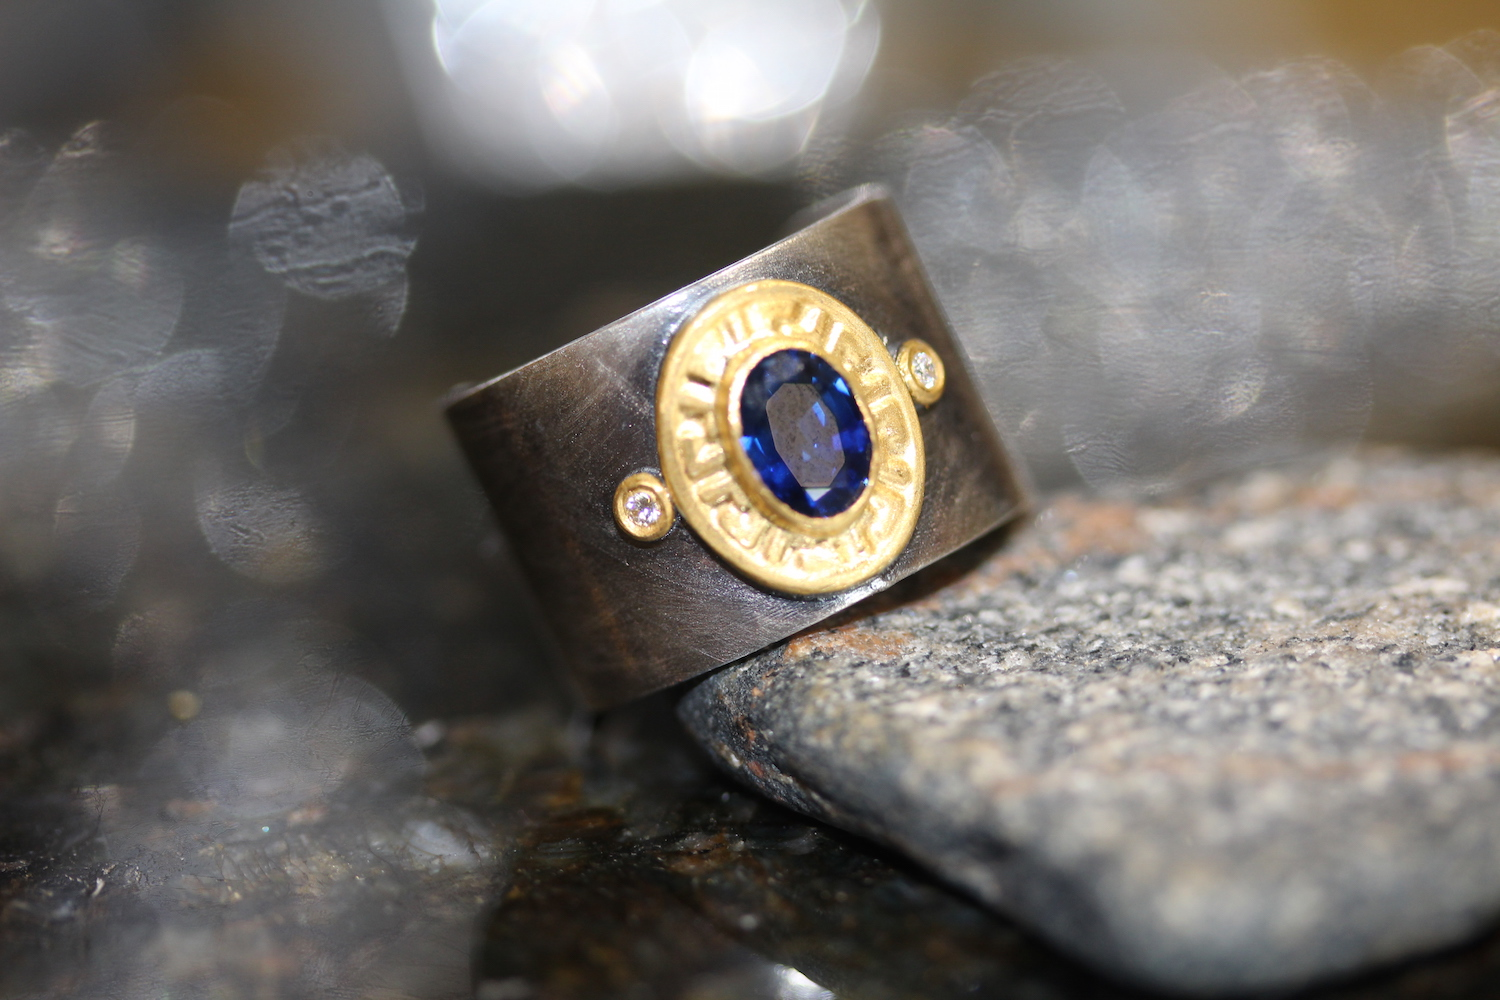 unique ring with 18k gold & sapphire accents